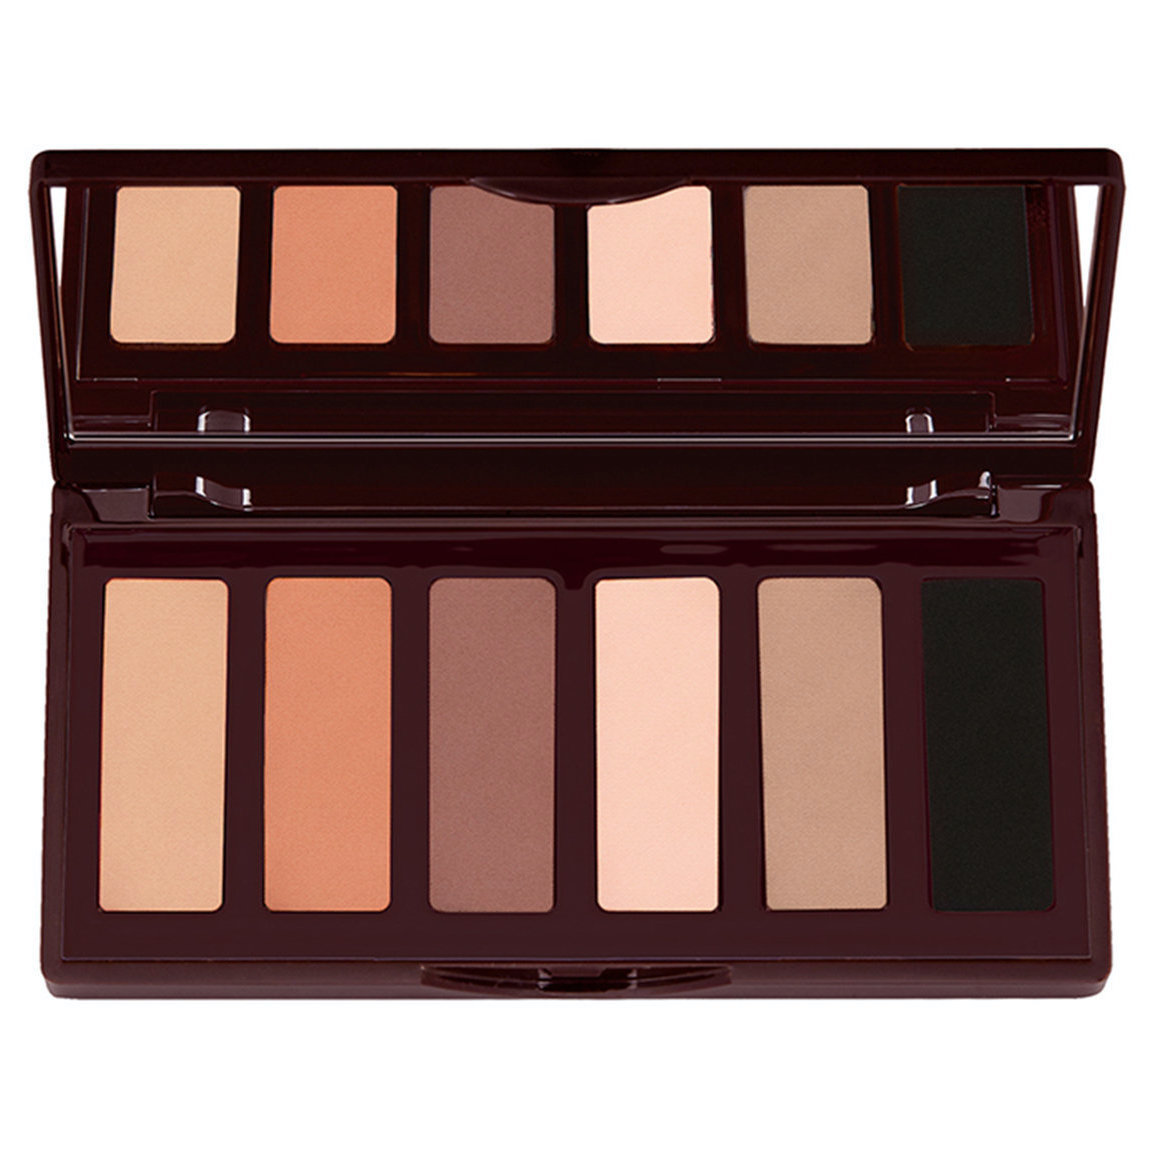 Charlotte Tilbury Easy Eye Palette Super Nudes alternative view 1 - product swatch.